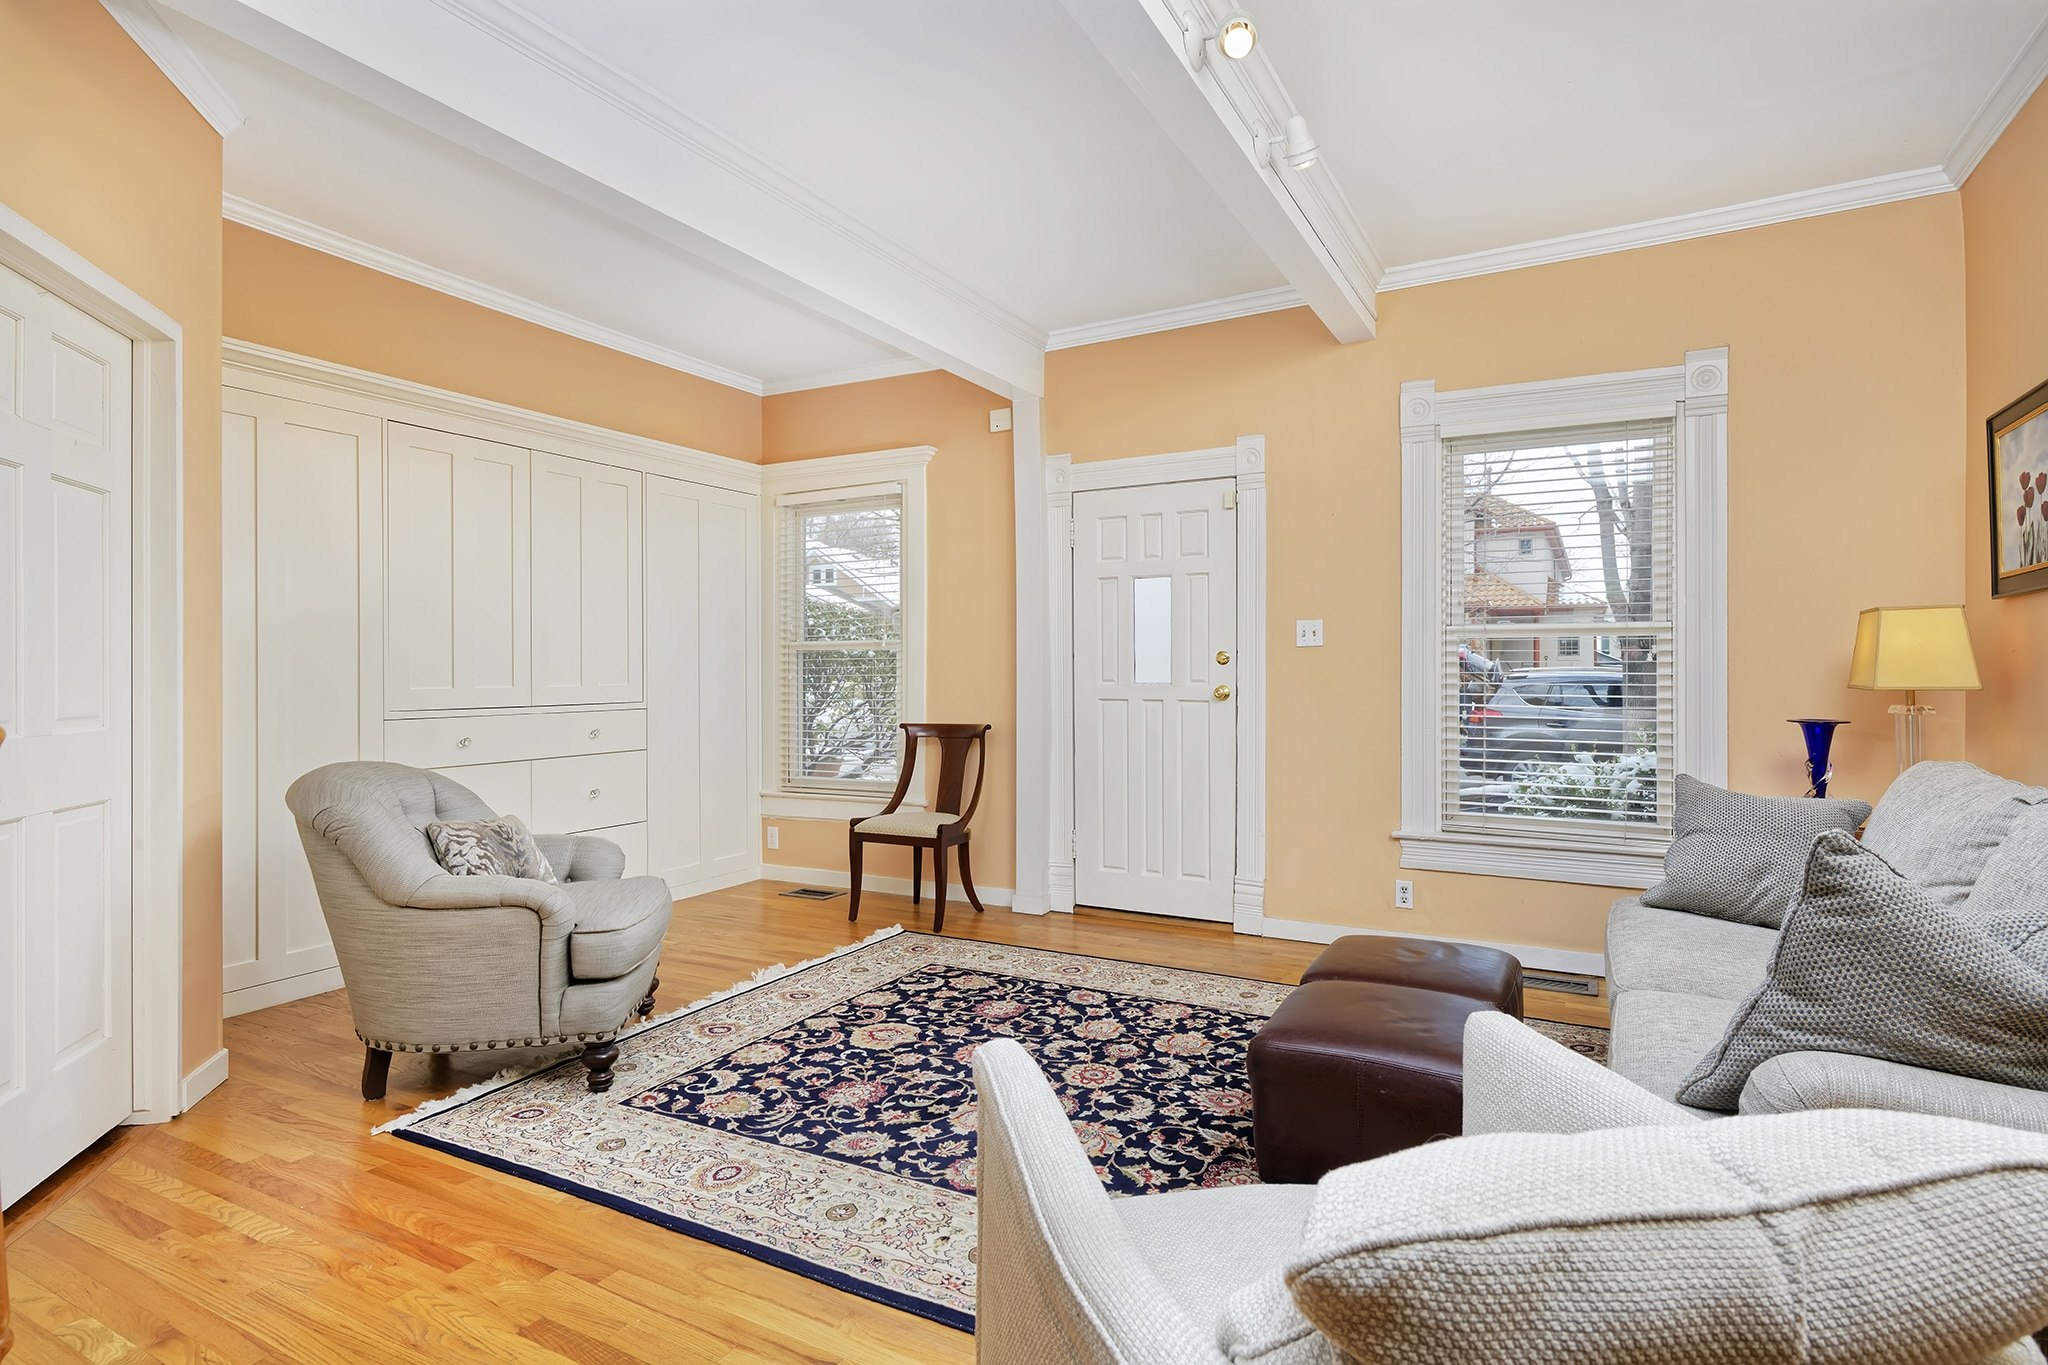 Stunning Victorian Home in Washington Park With Tall Ceilings, Custom Built-ins and more